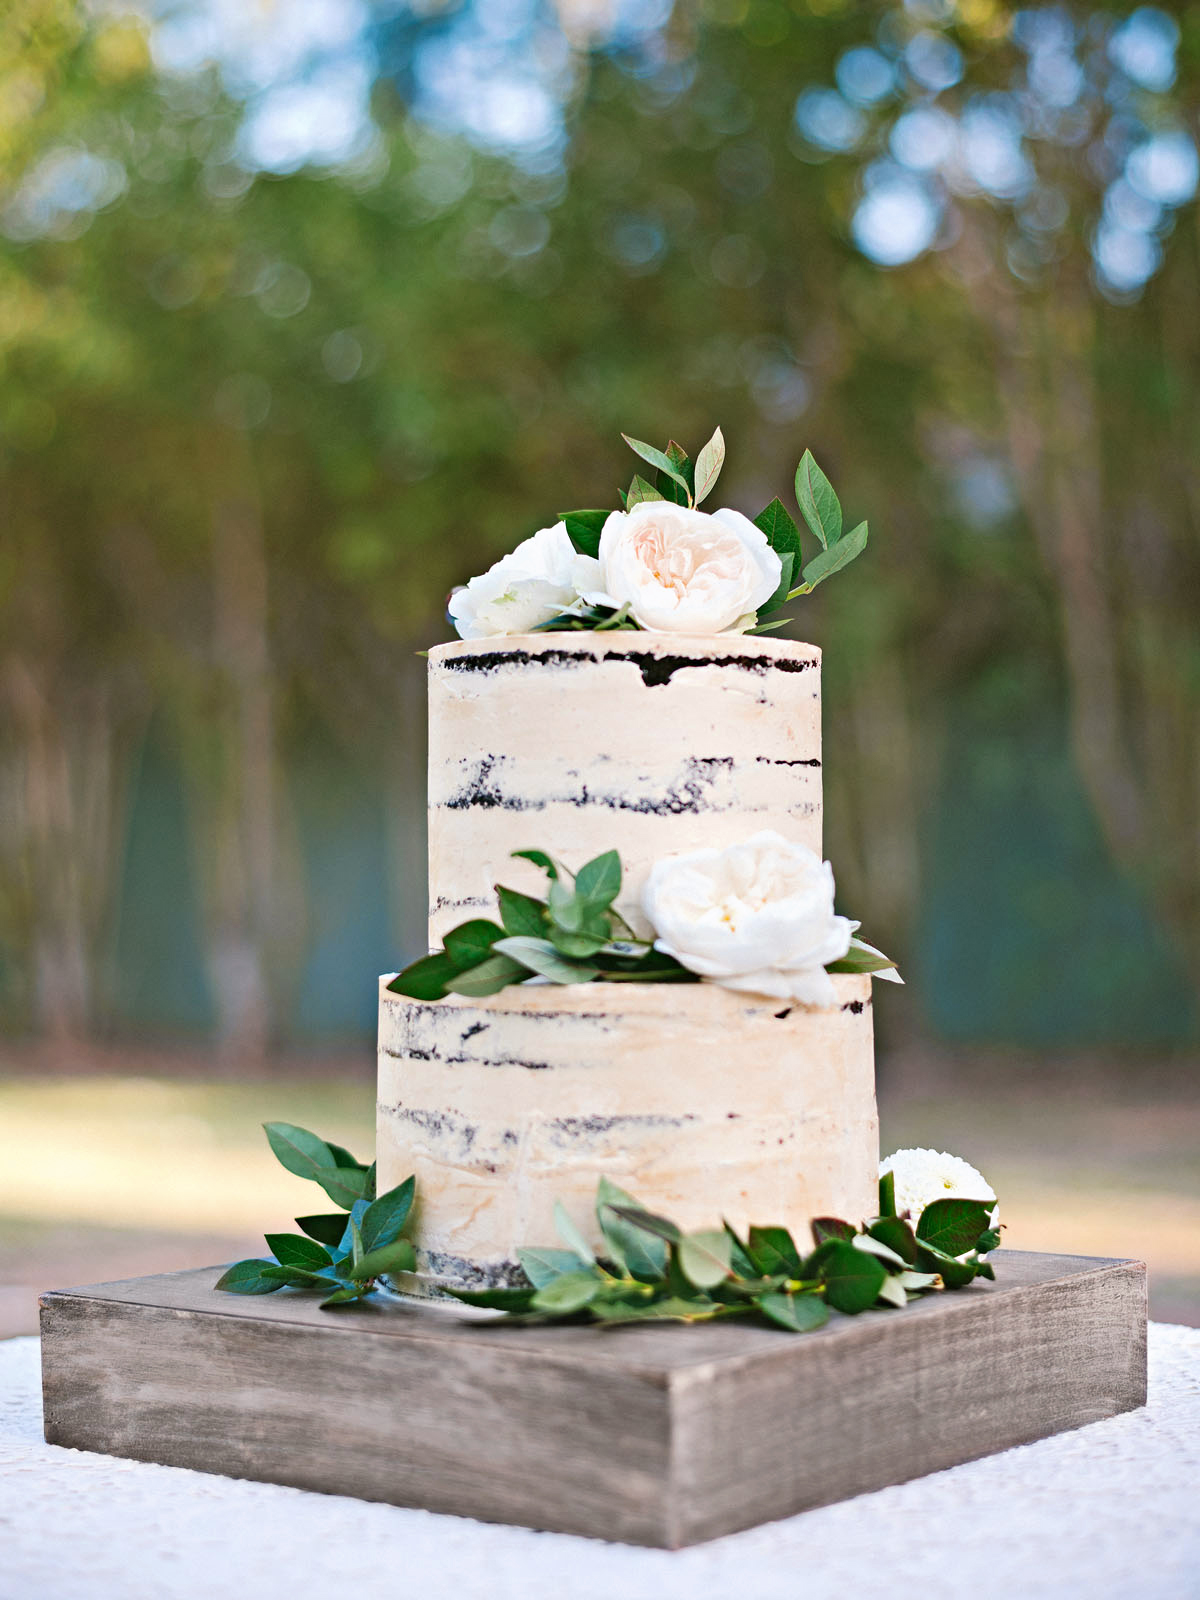 The couple chose a seminaked dulce de leche and caramel chocolate-mousse cake, decked in blueberry foliage and garden roses.